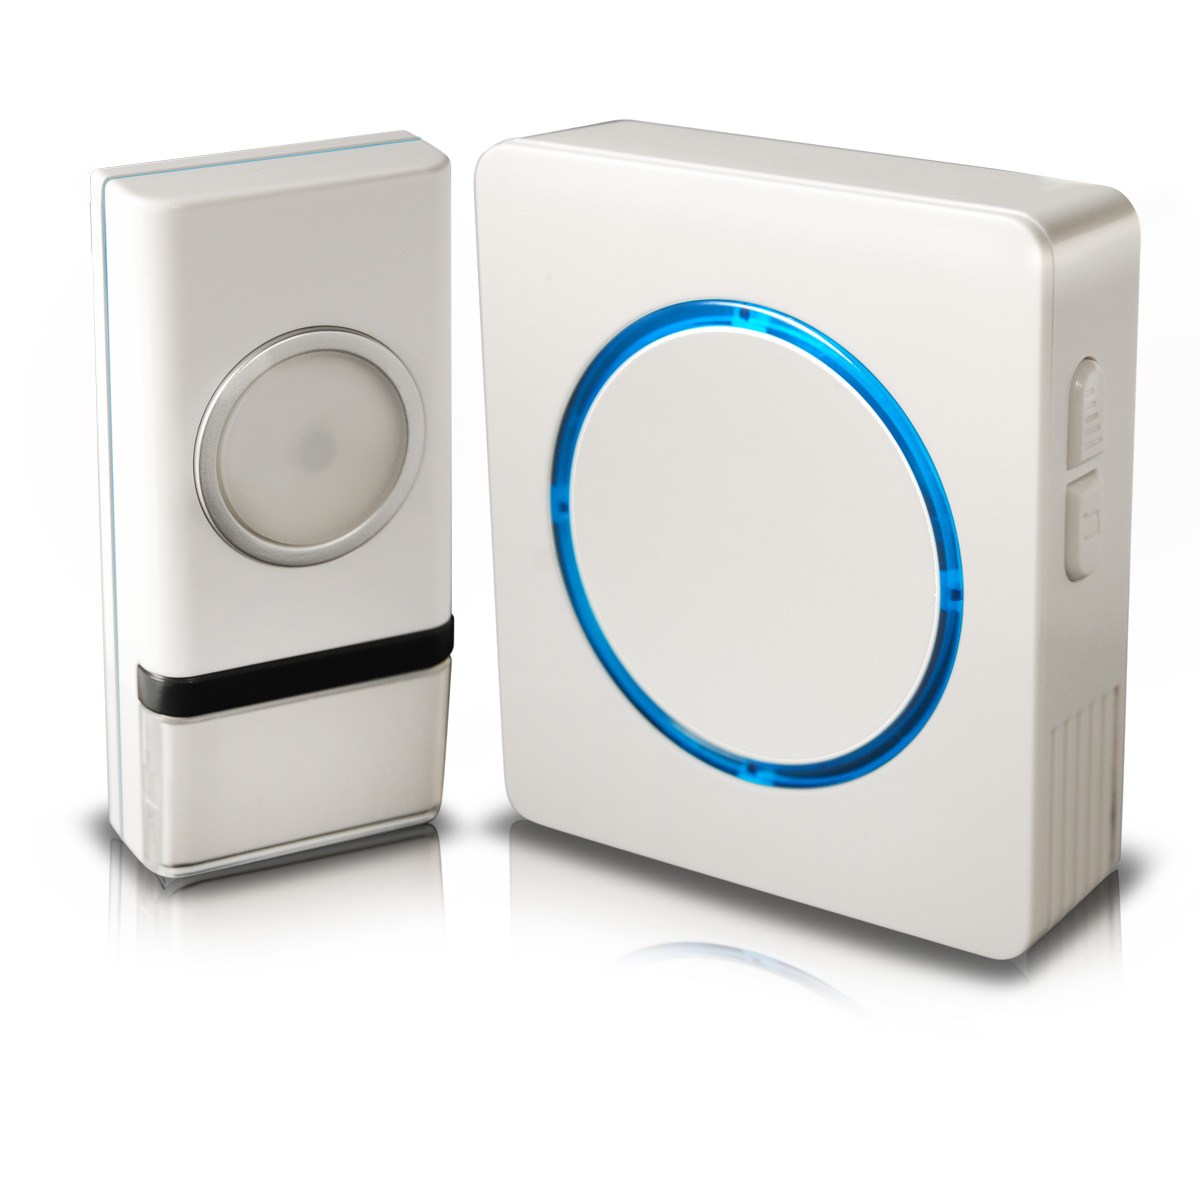 Wireless Door Chime With Compact Backlit Design Swann